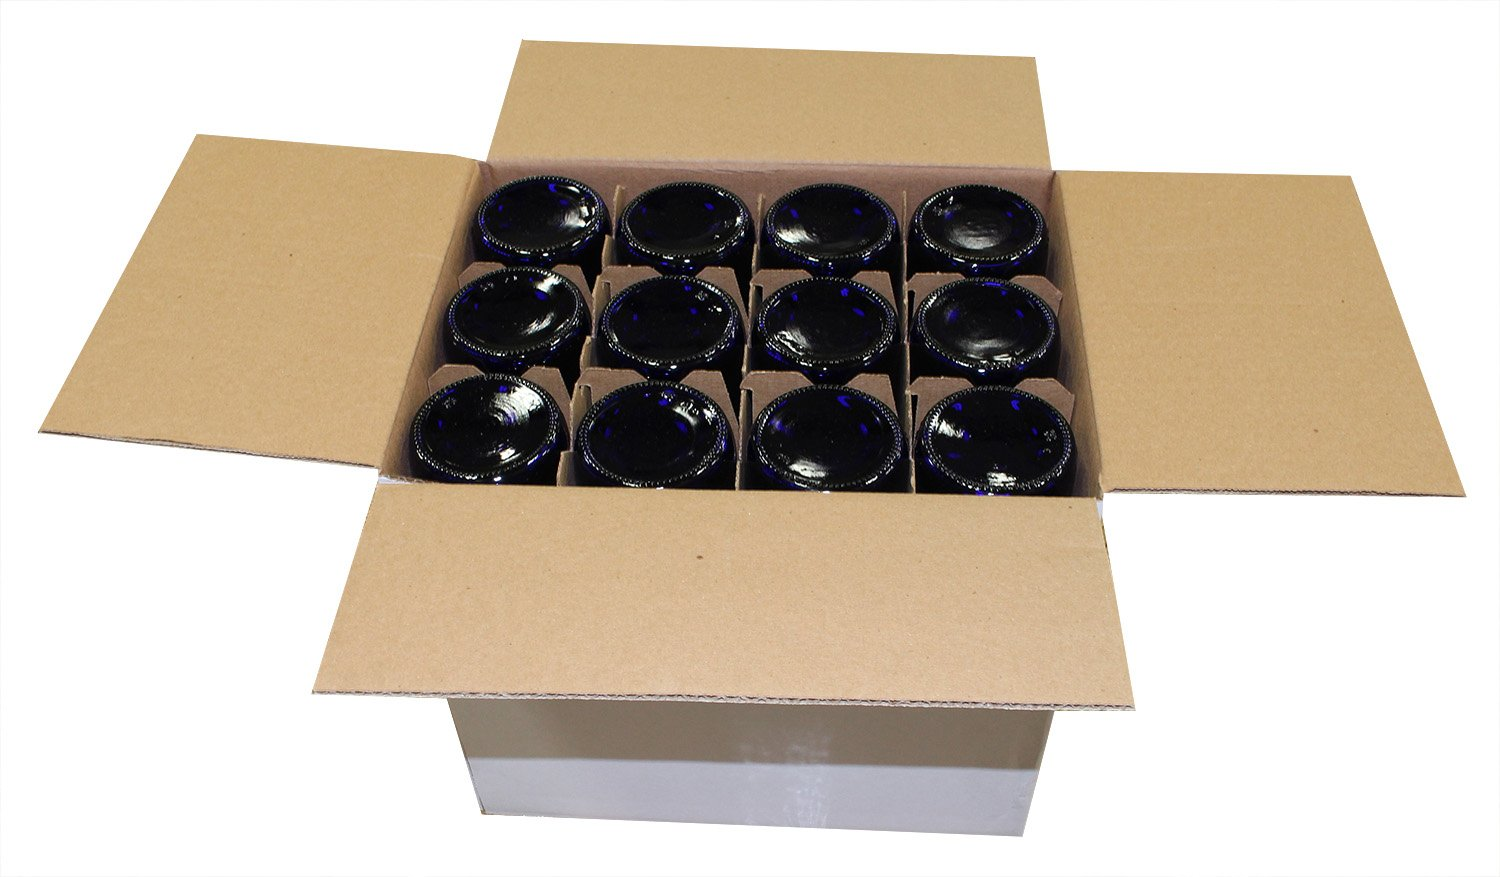 Midwest Homebrewing and Winemaking Supplies 750 ml Cobalt Glass Claret/Bordeaux Bottles (12 per case) by Midwest Homebrewing and Winemaking Supplies